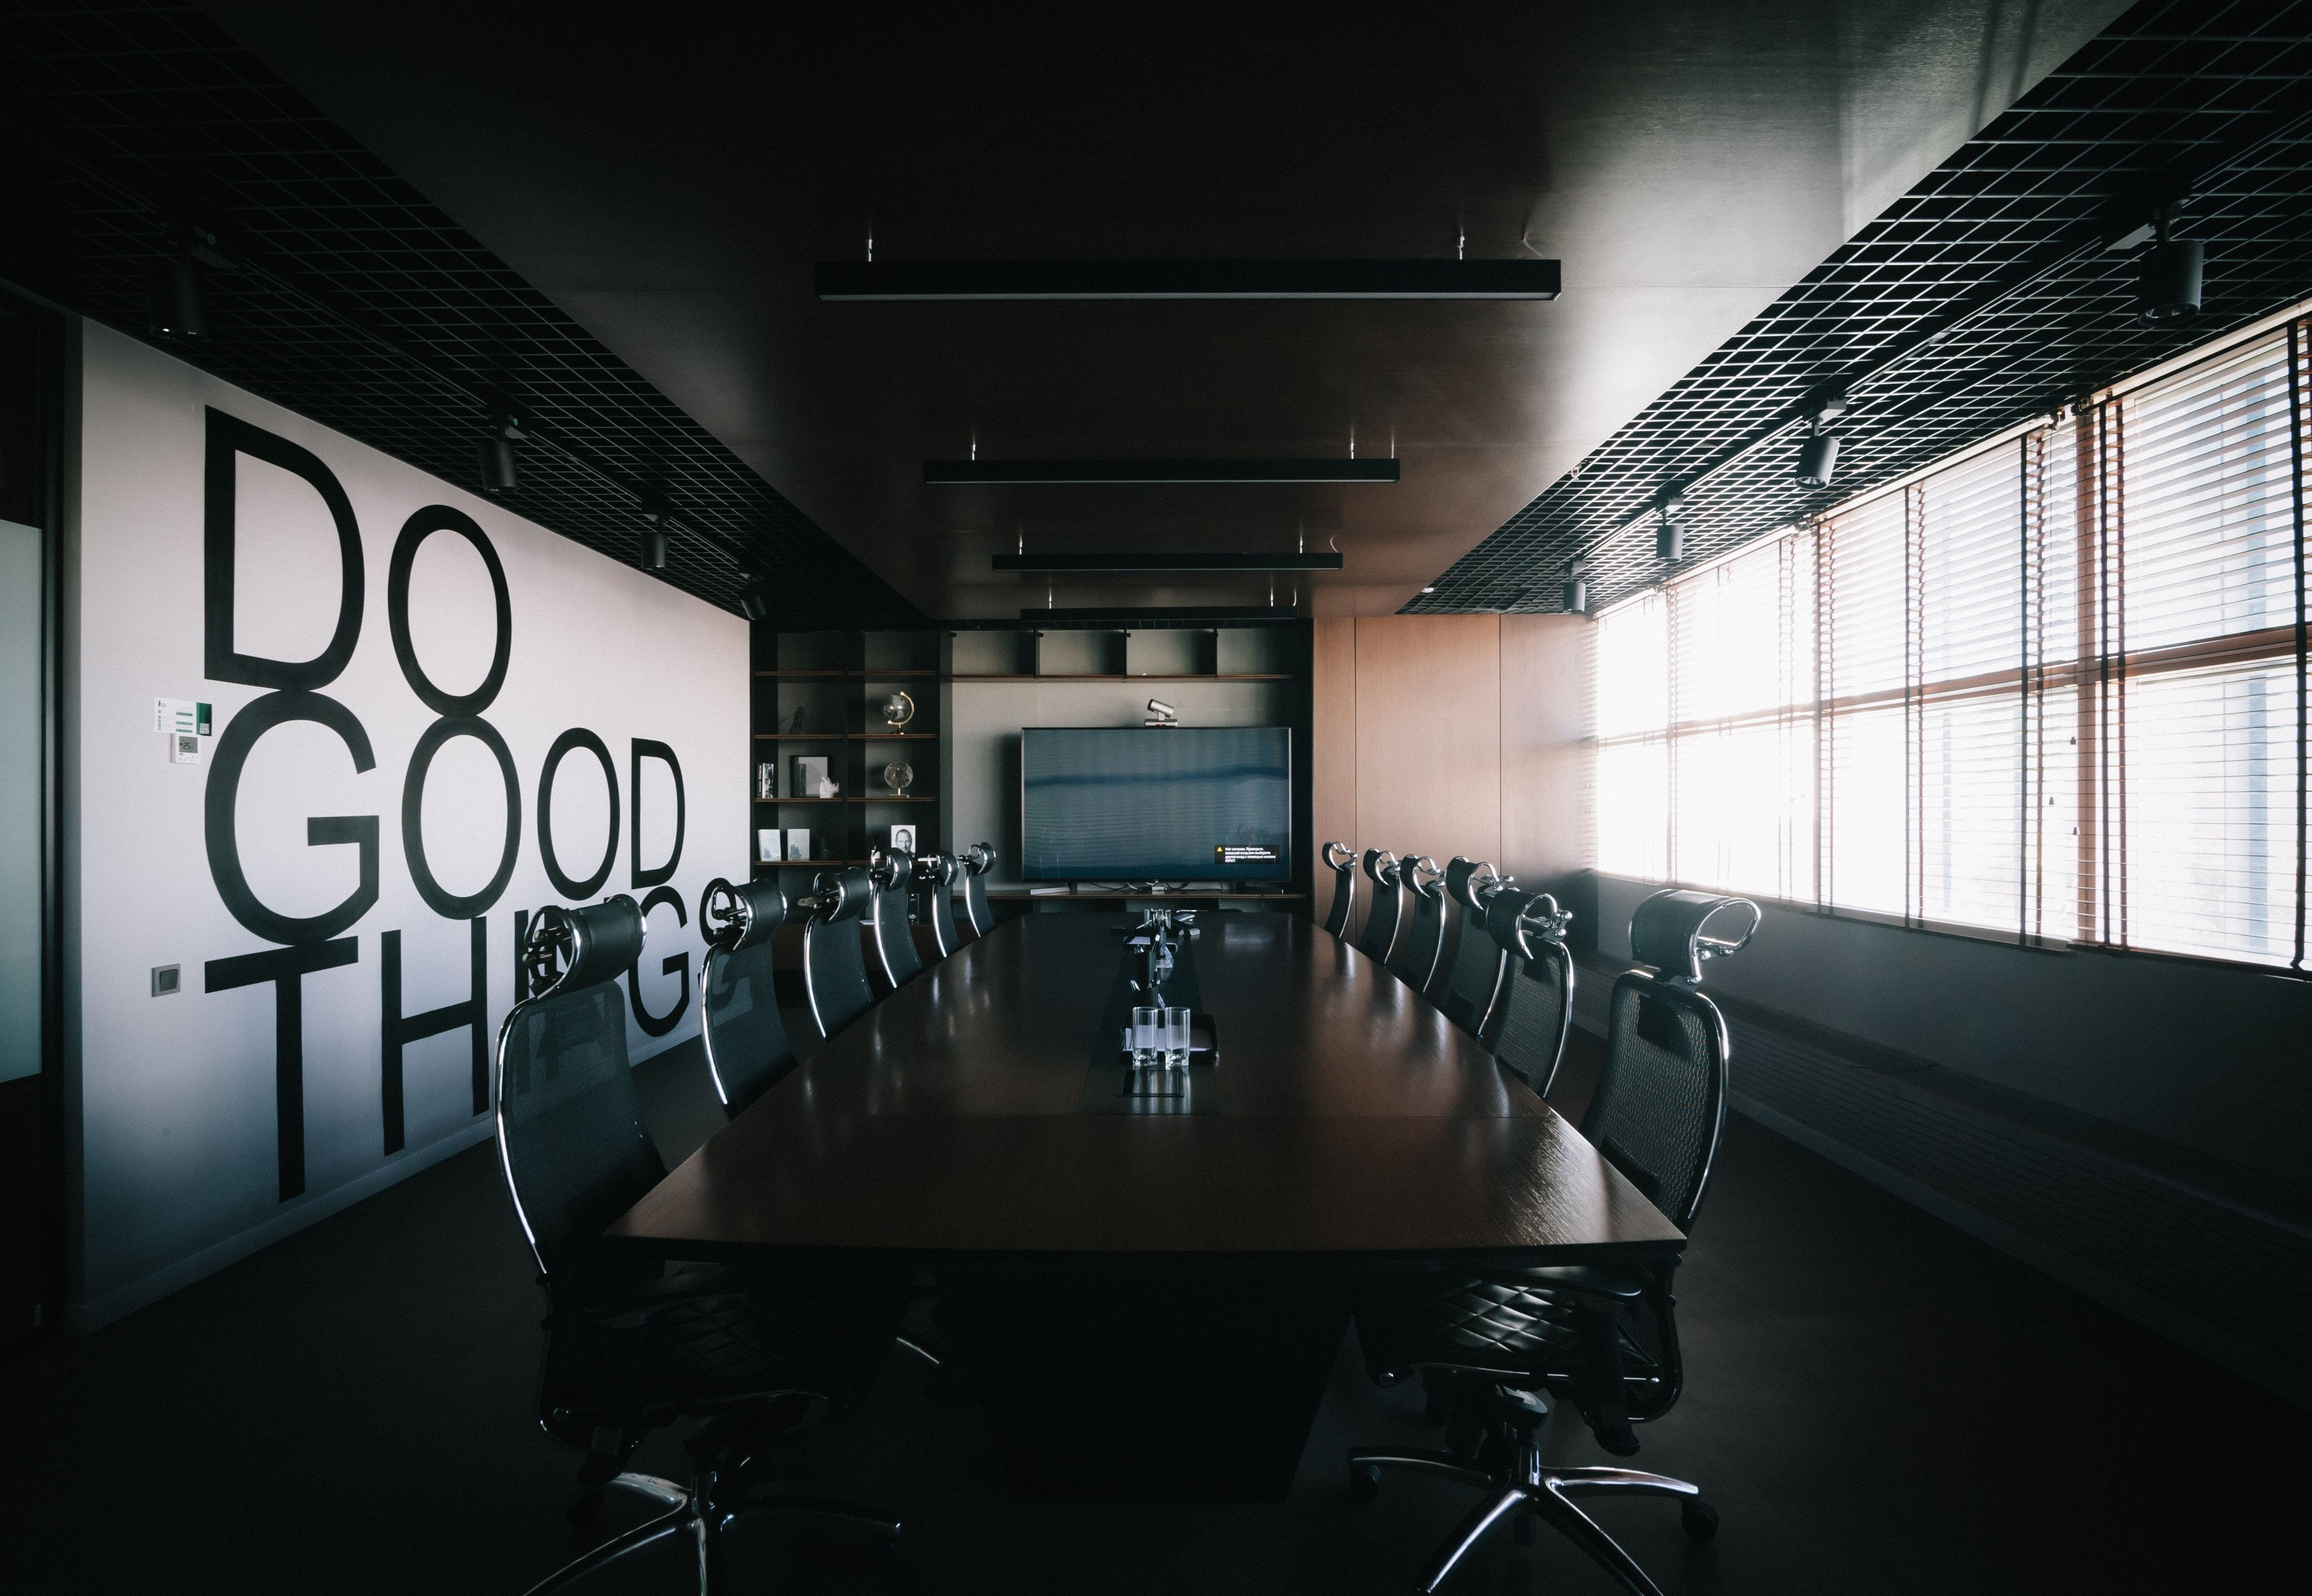 Conference Room Vm1Voswbs0A